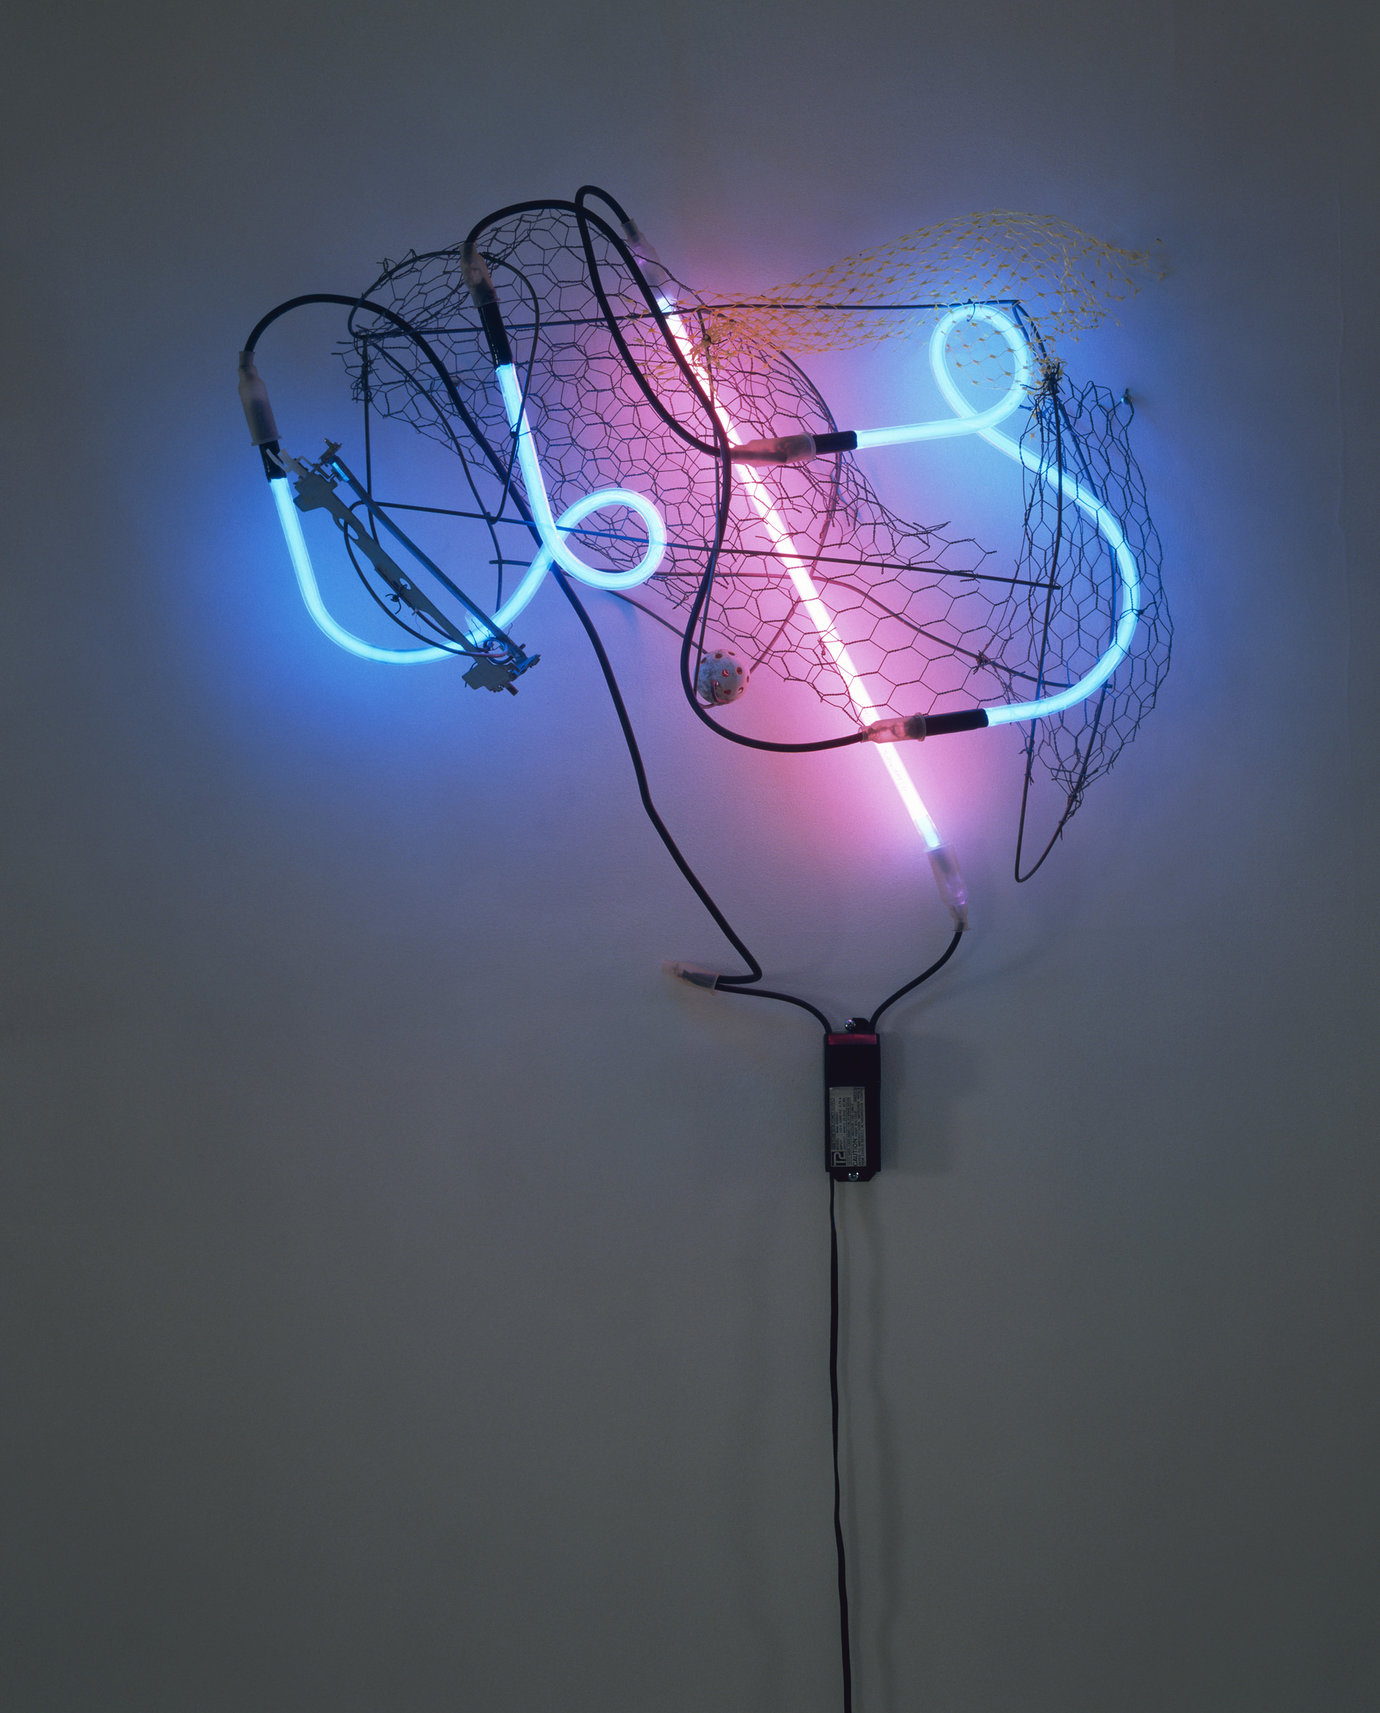 ", 2004. neon, transformer and found objects, 30"" x 27"" x 9"" (76.2 cm x 68.6 cm x 22.9 cm)."